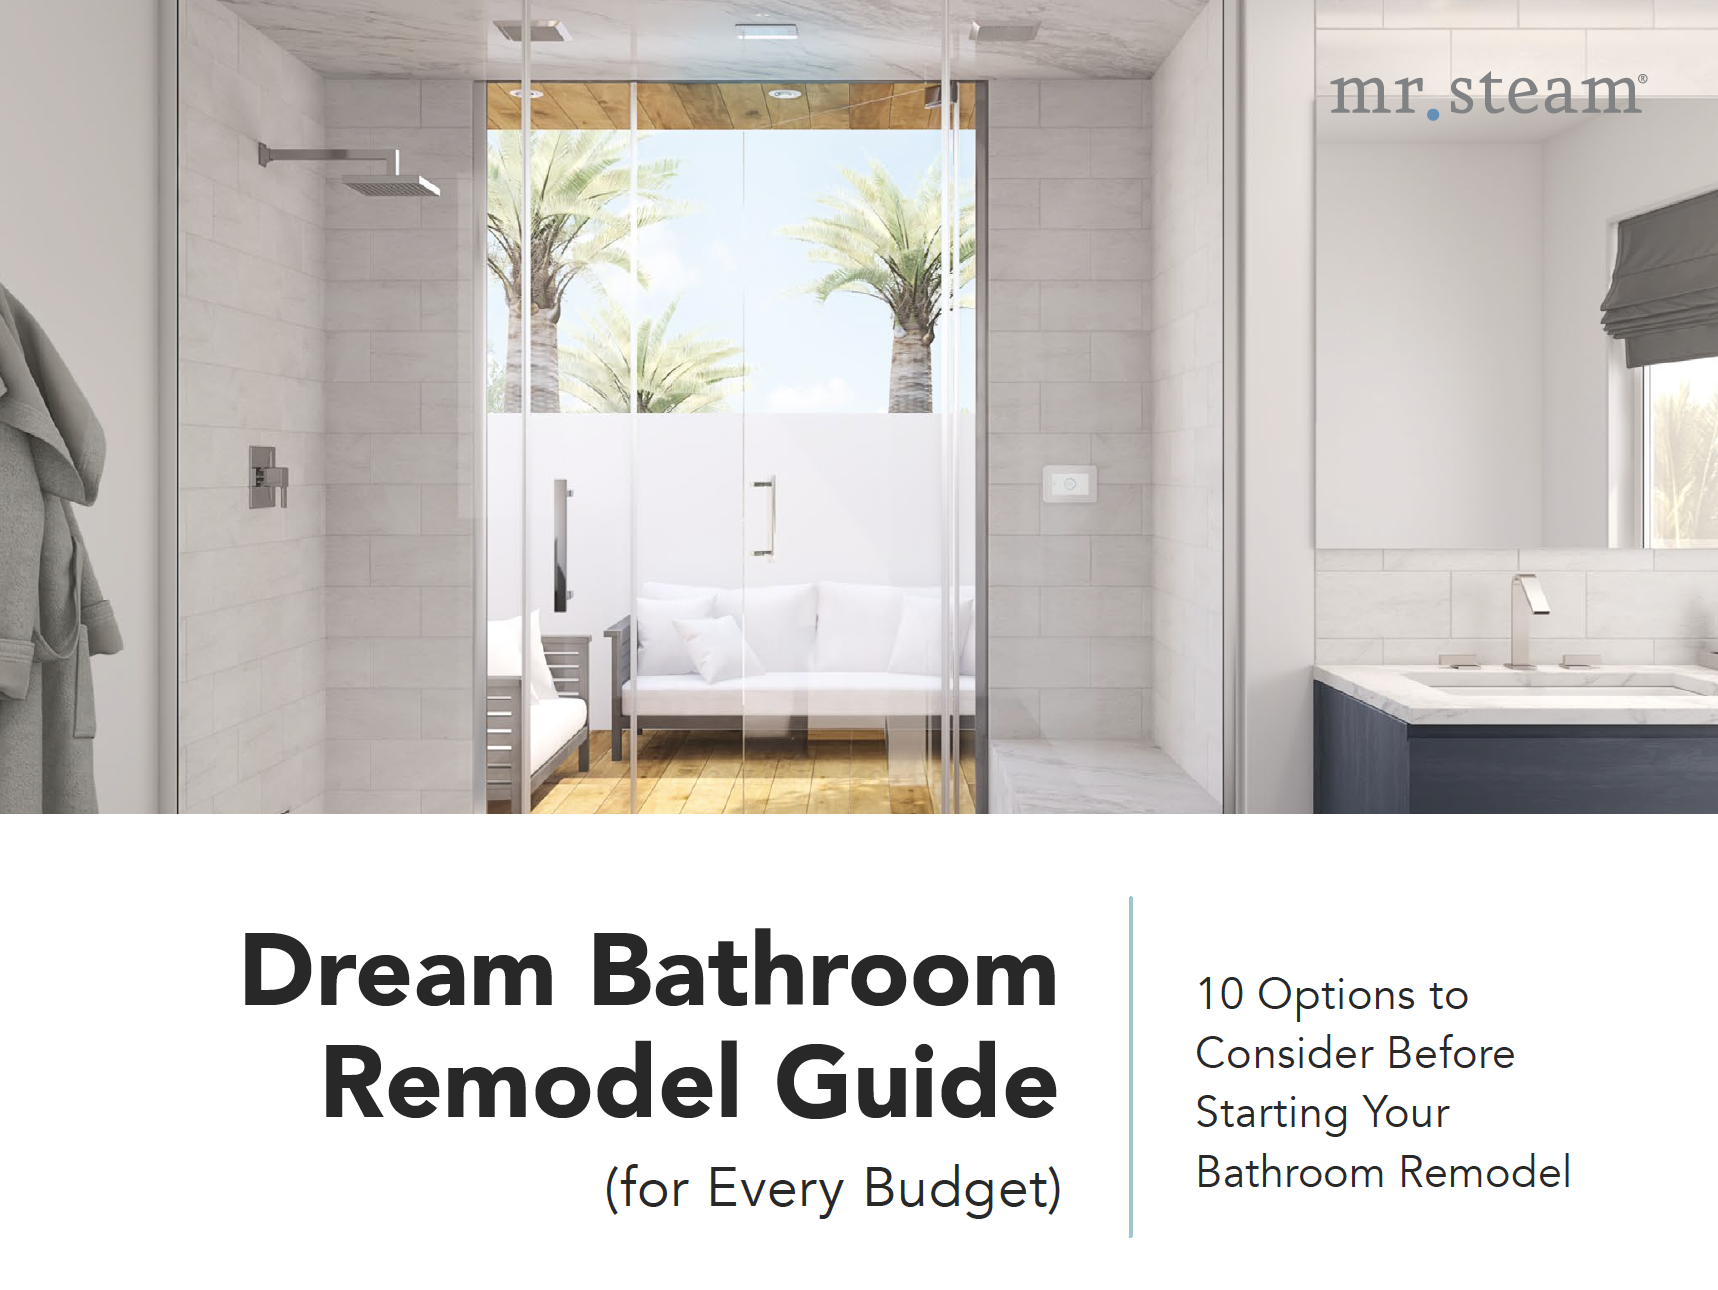 Dream Bathroom Remodel Guide